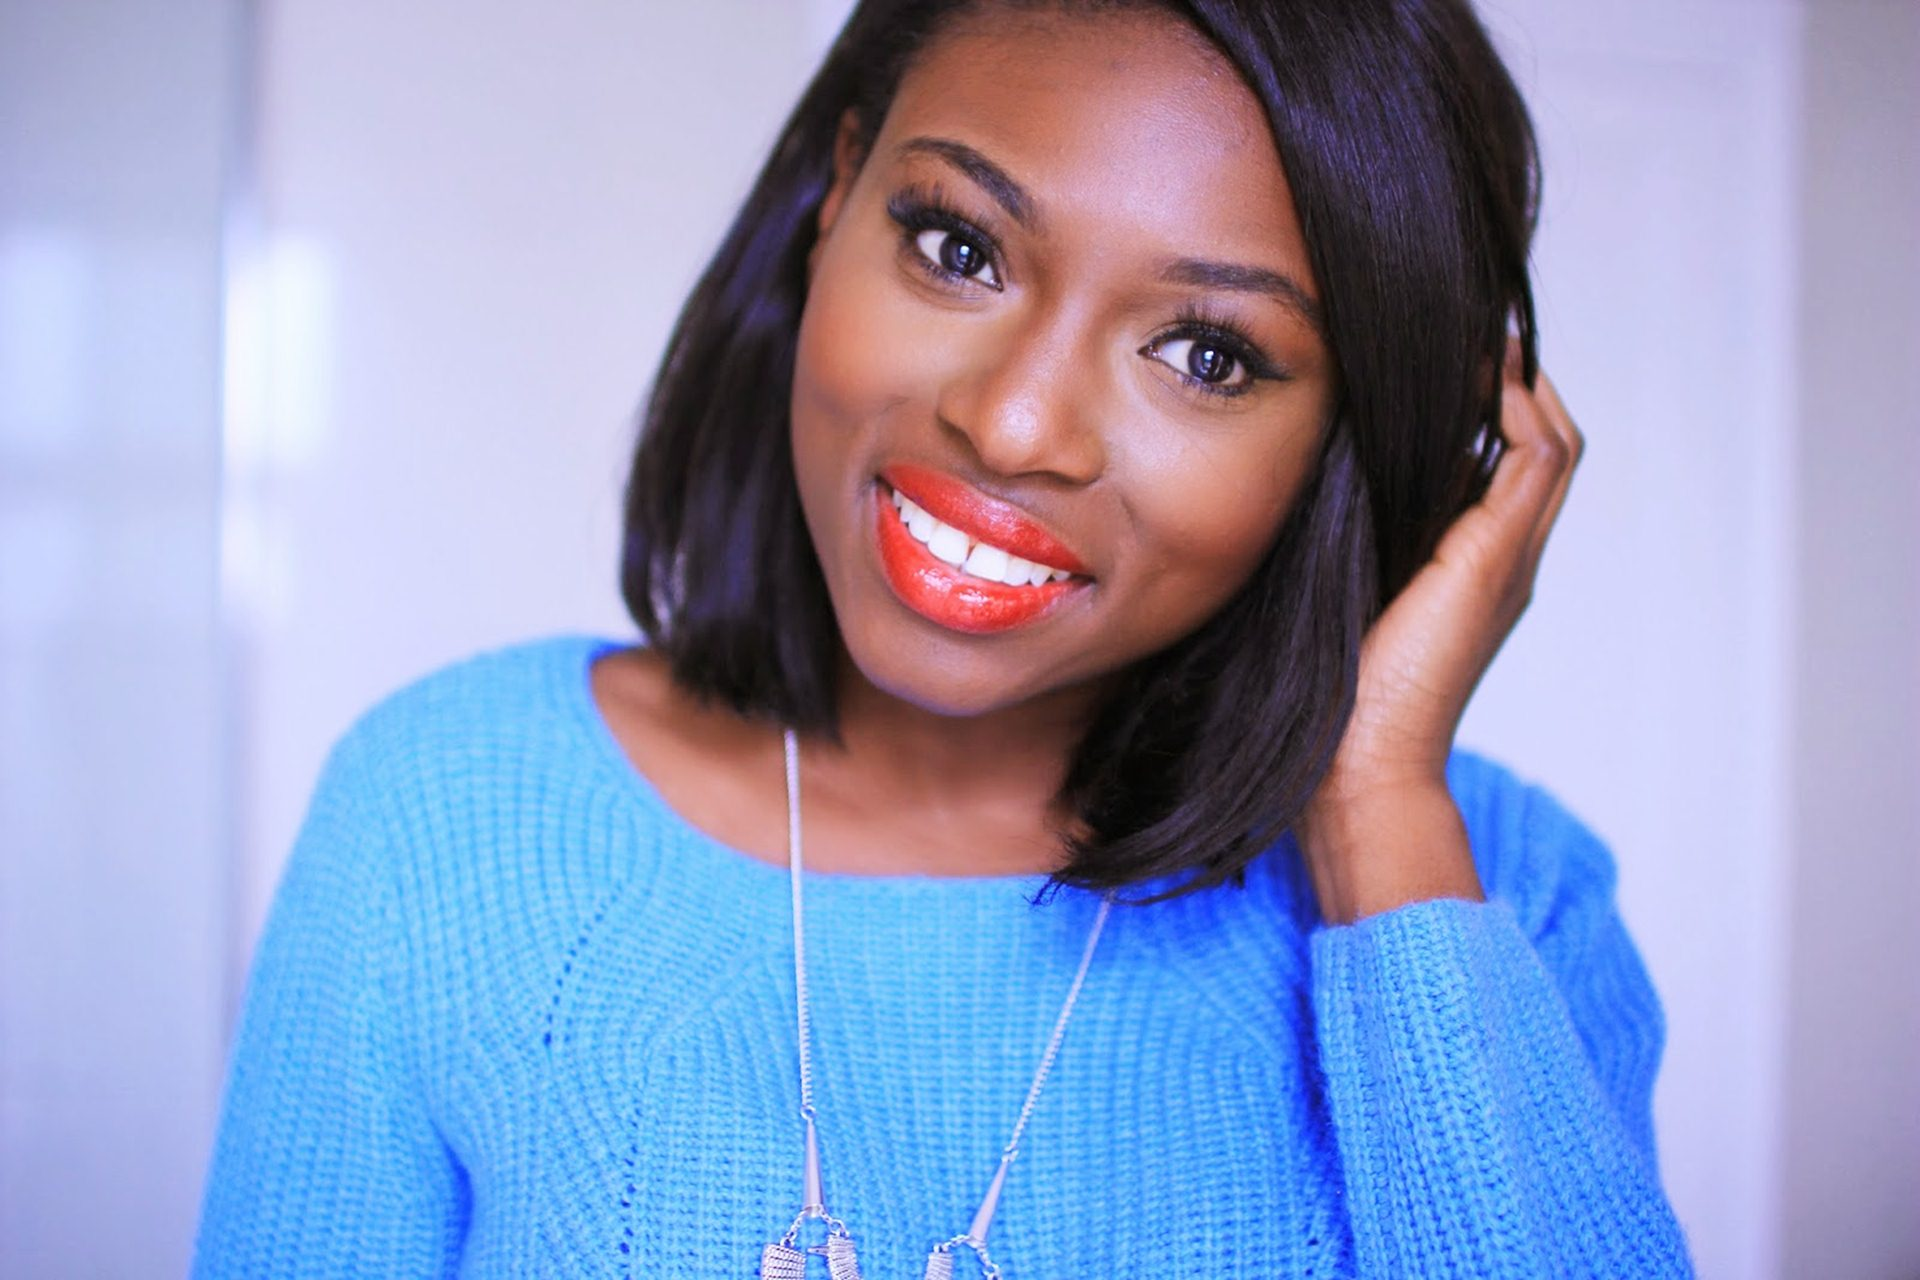 8 UK Fashion And Beauty YouTubers To Help You Achieve That